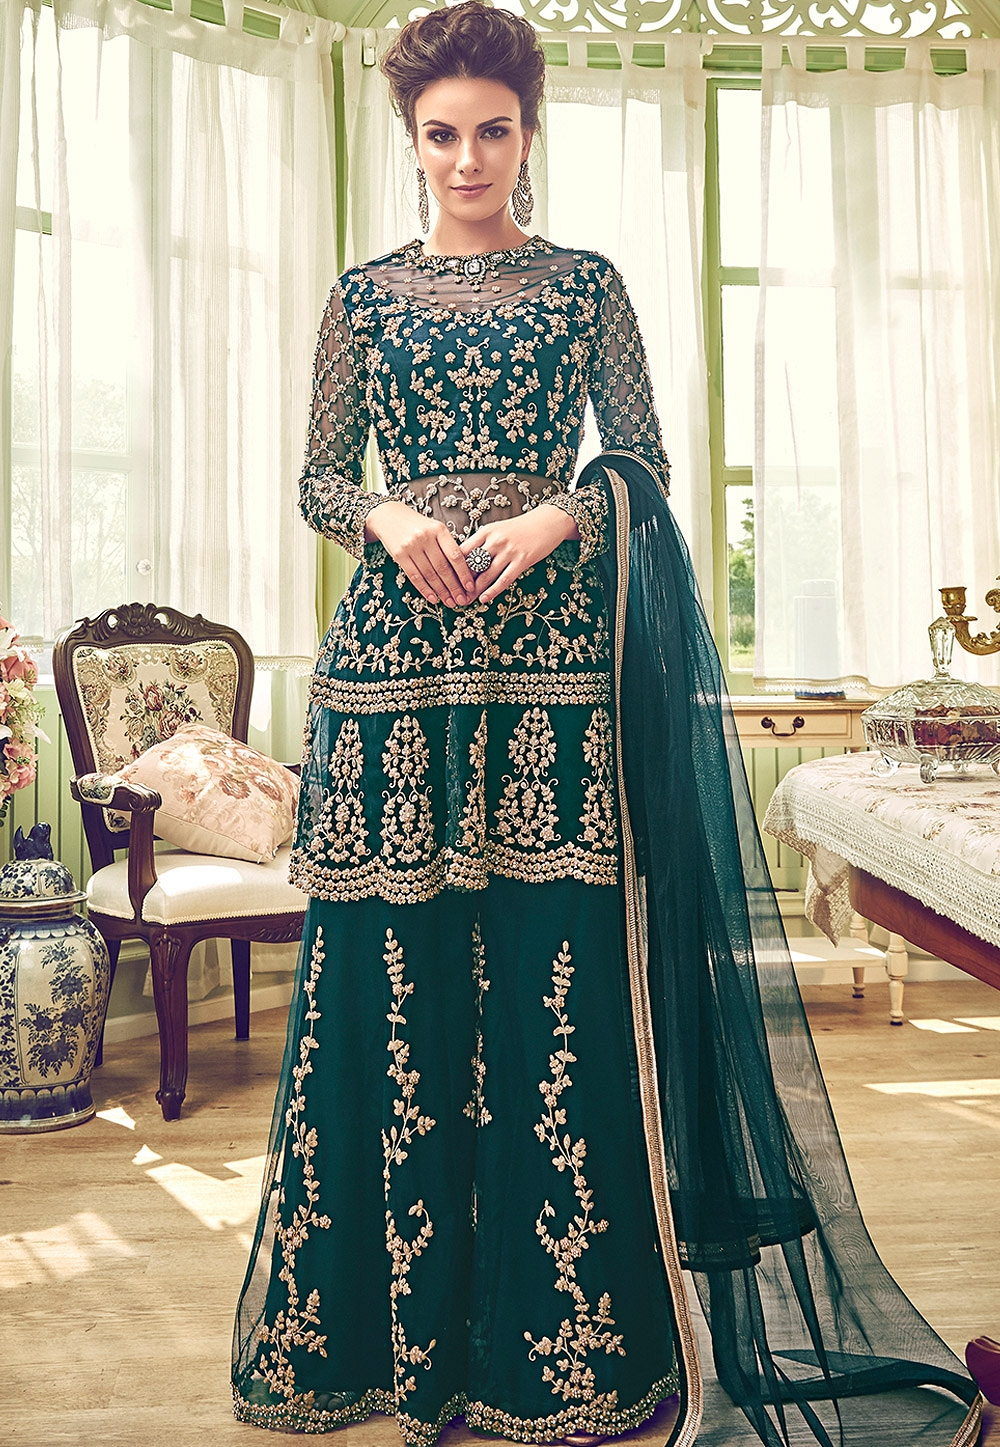 d5777ed0d0 Green Shade Butterfly Net Embroidery Palazzo Style Pakistani Suit ...